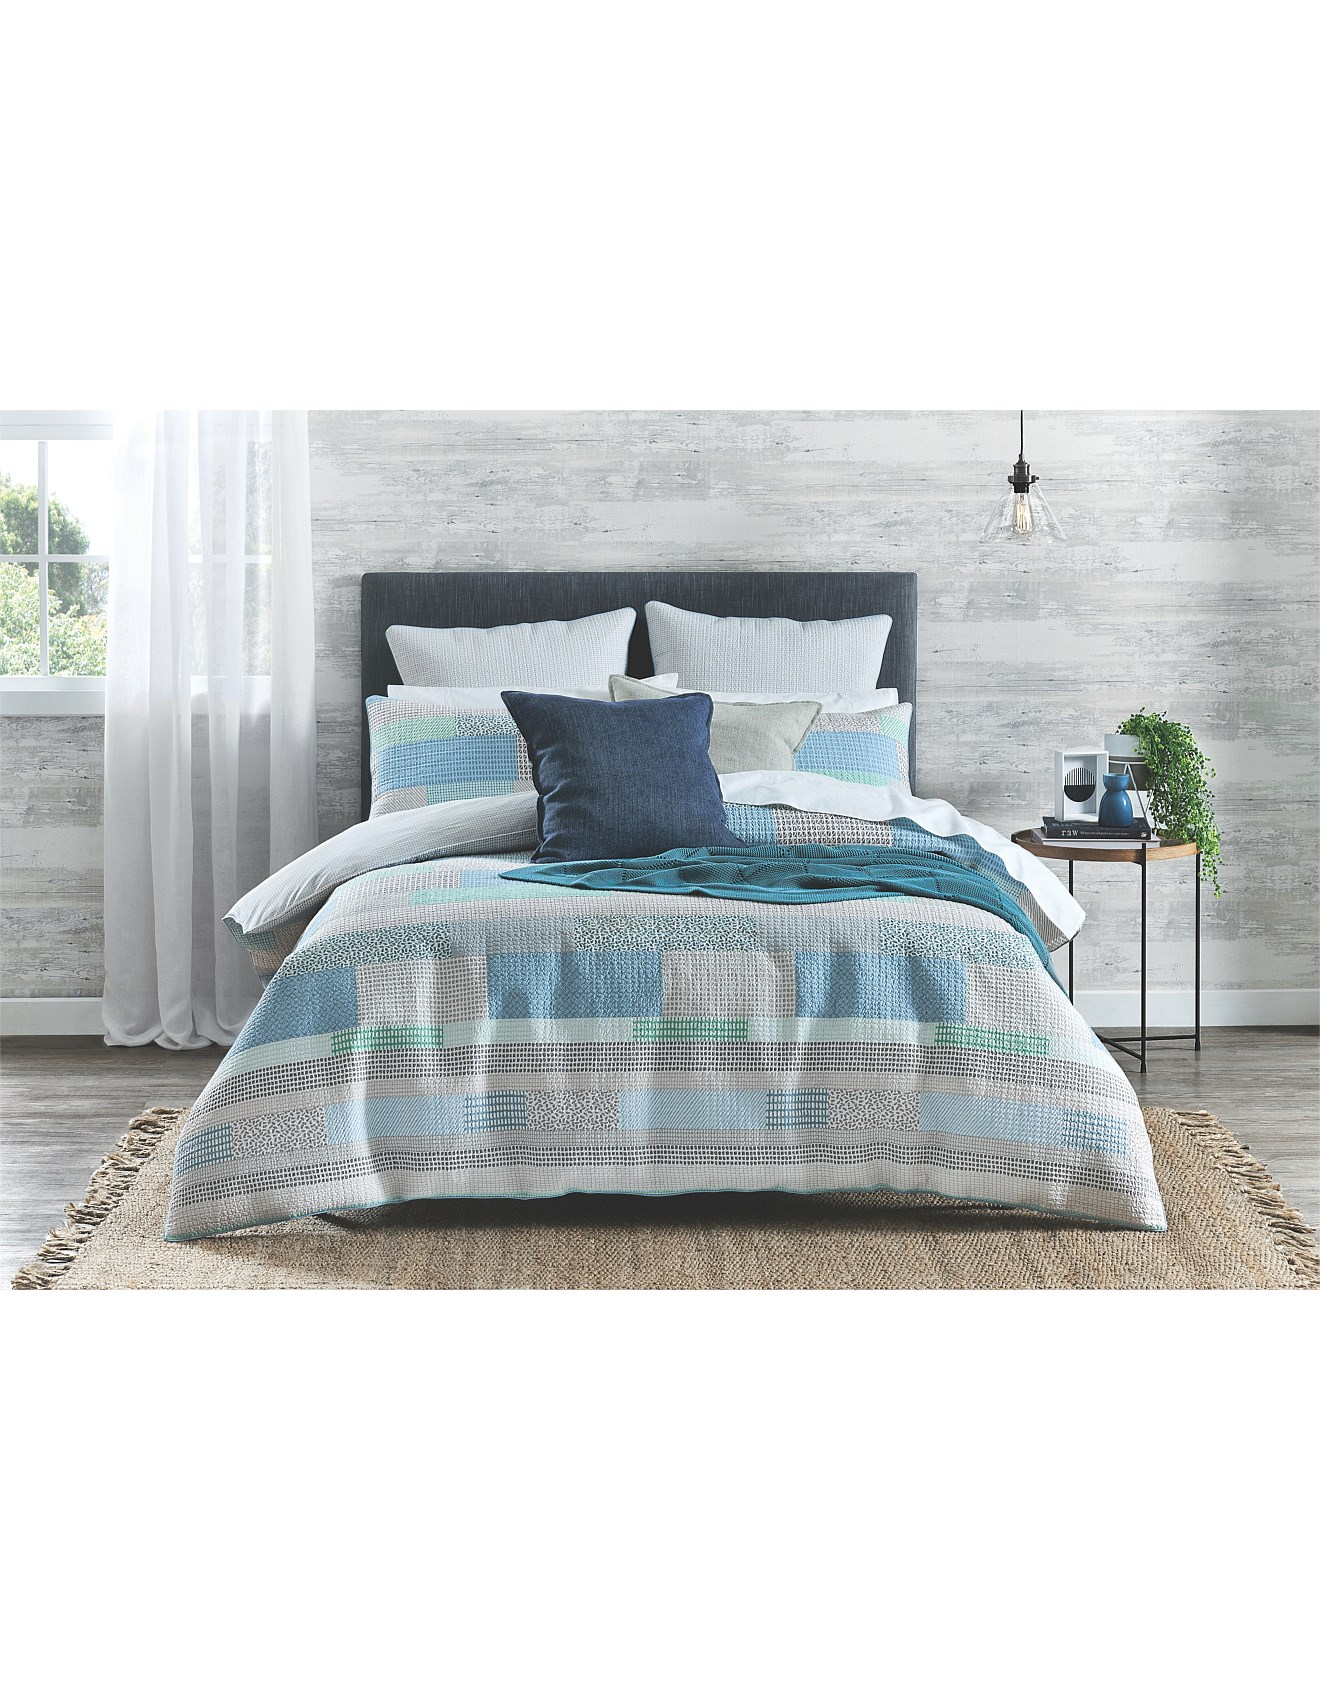 Bed And Bath Quilt Covers Bed And Bath Buy Bedding Quilts And More David Jones